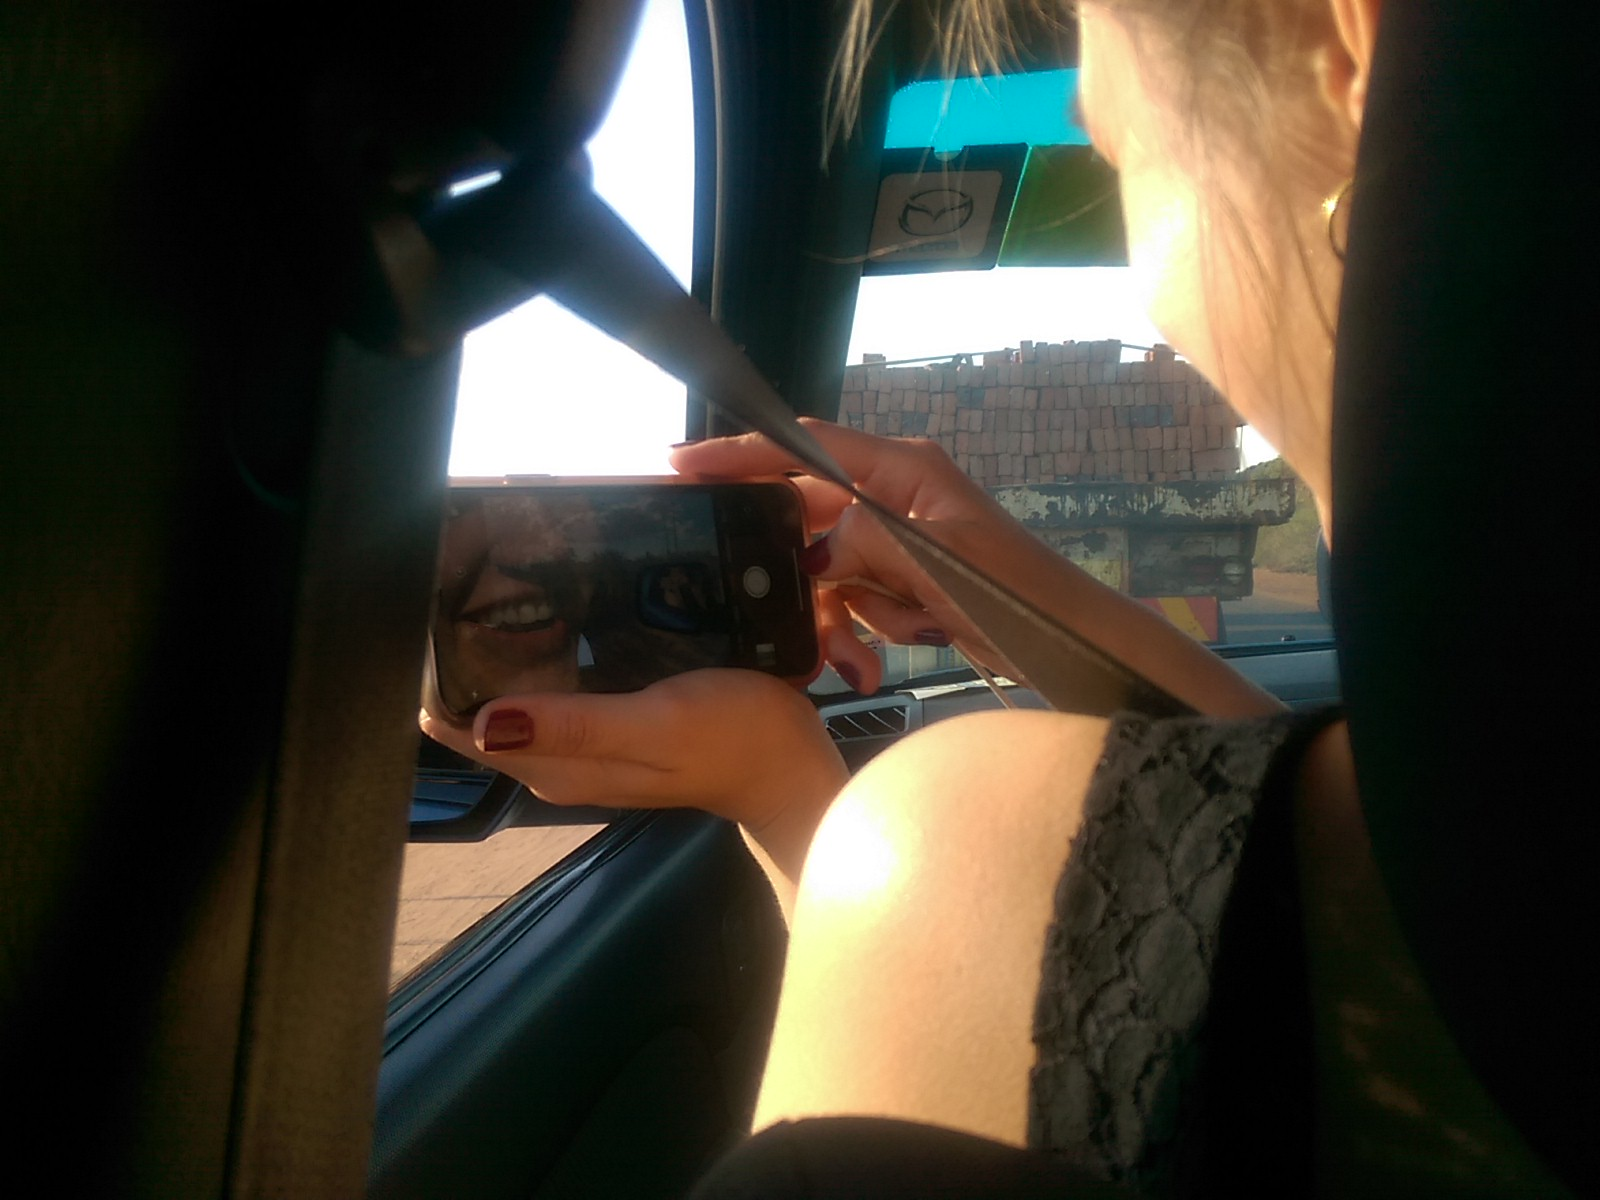 From behind the front seat, a woman takes a photo out of a car window